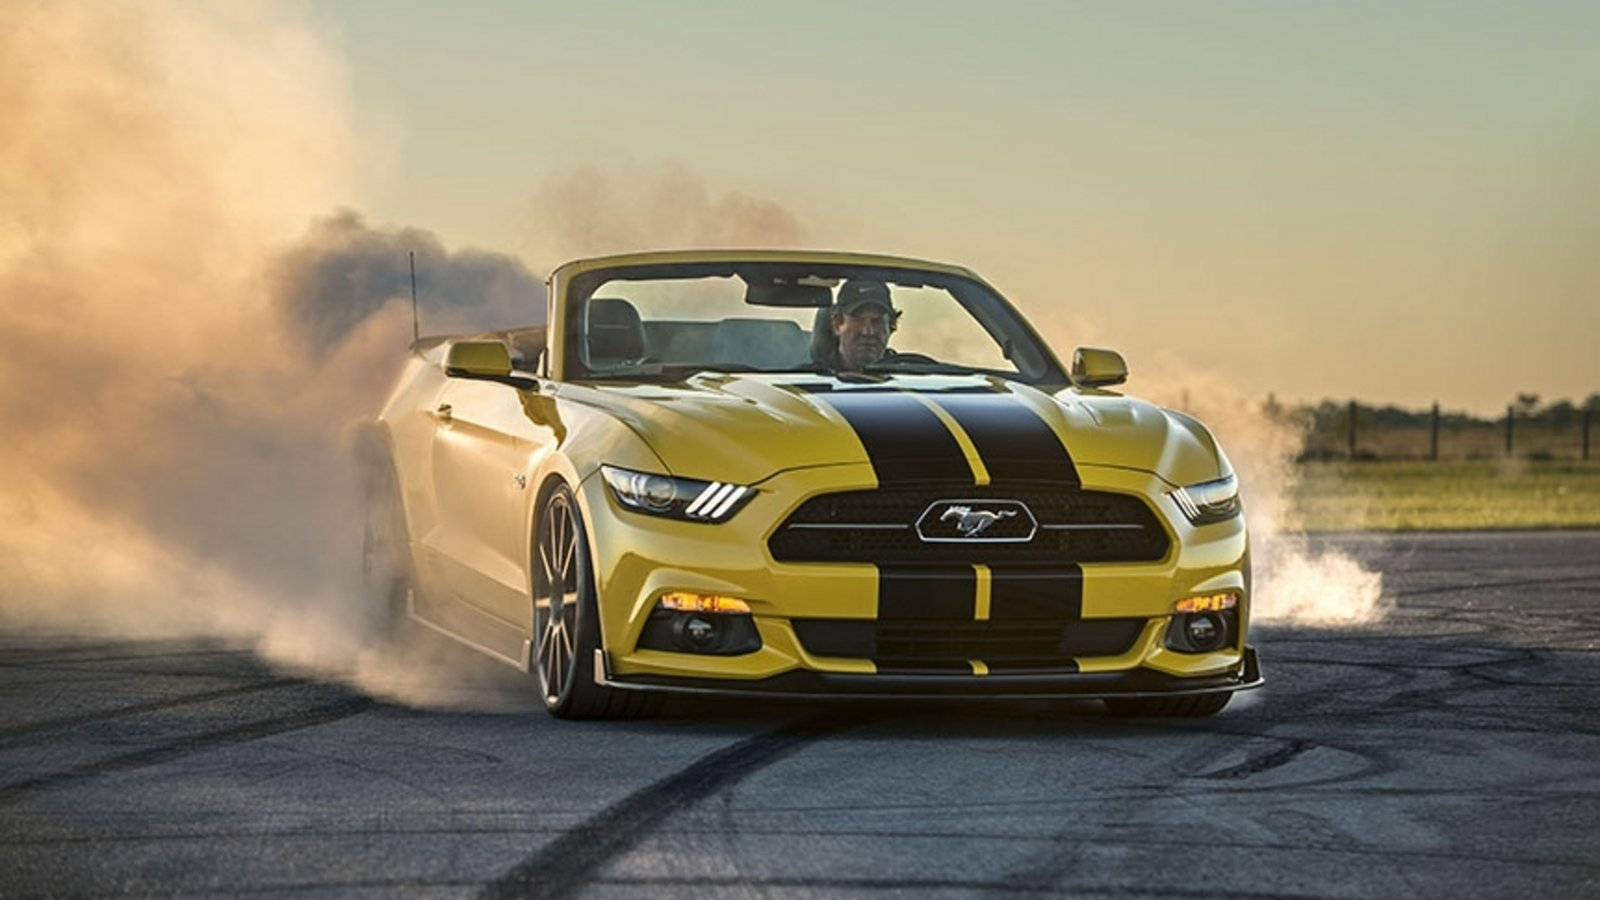 2016 Ford Mustang Convertible HPE750 By Hennessey Review ...